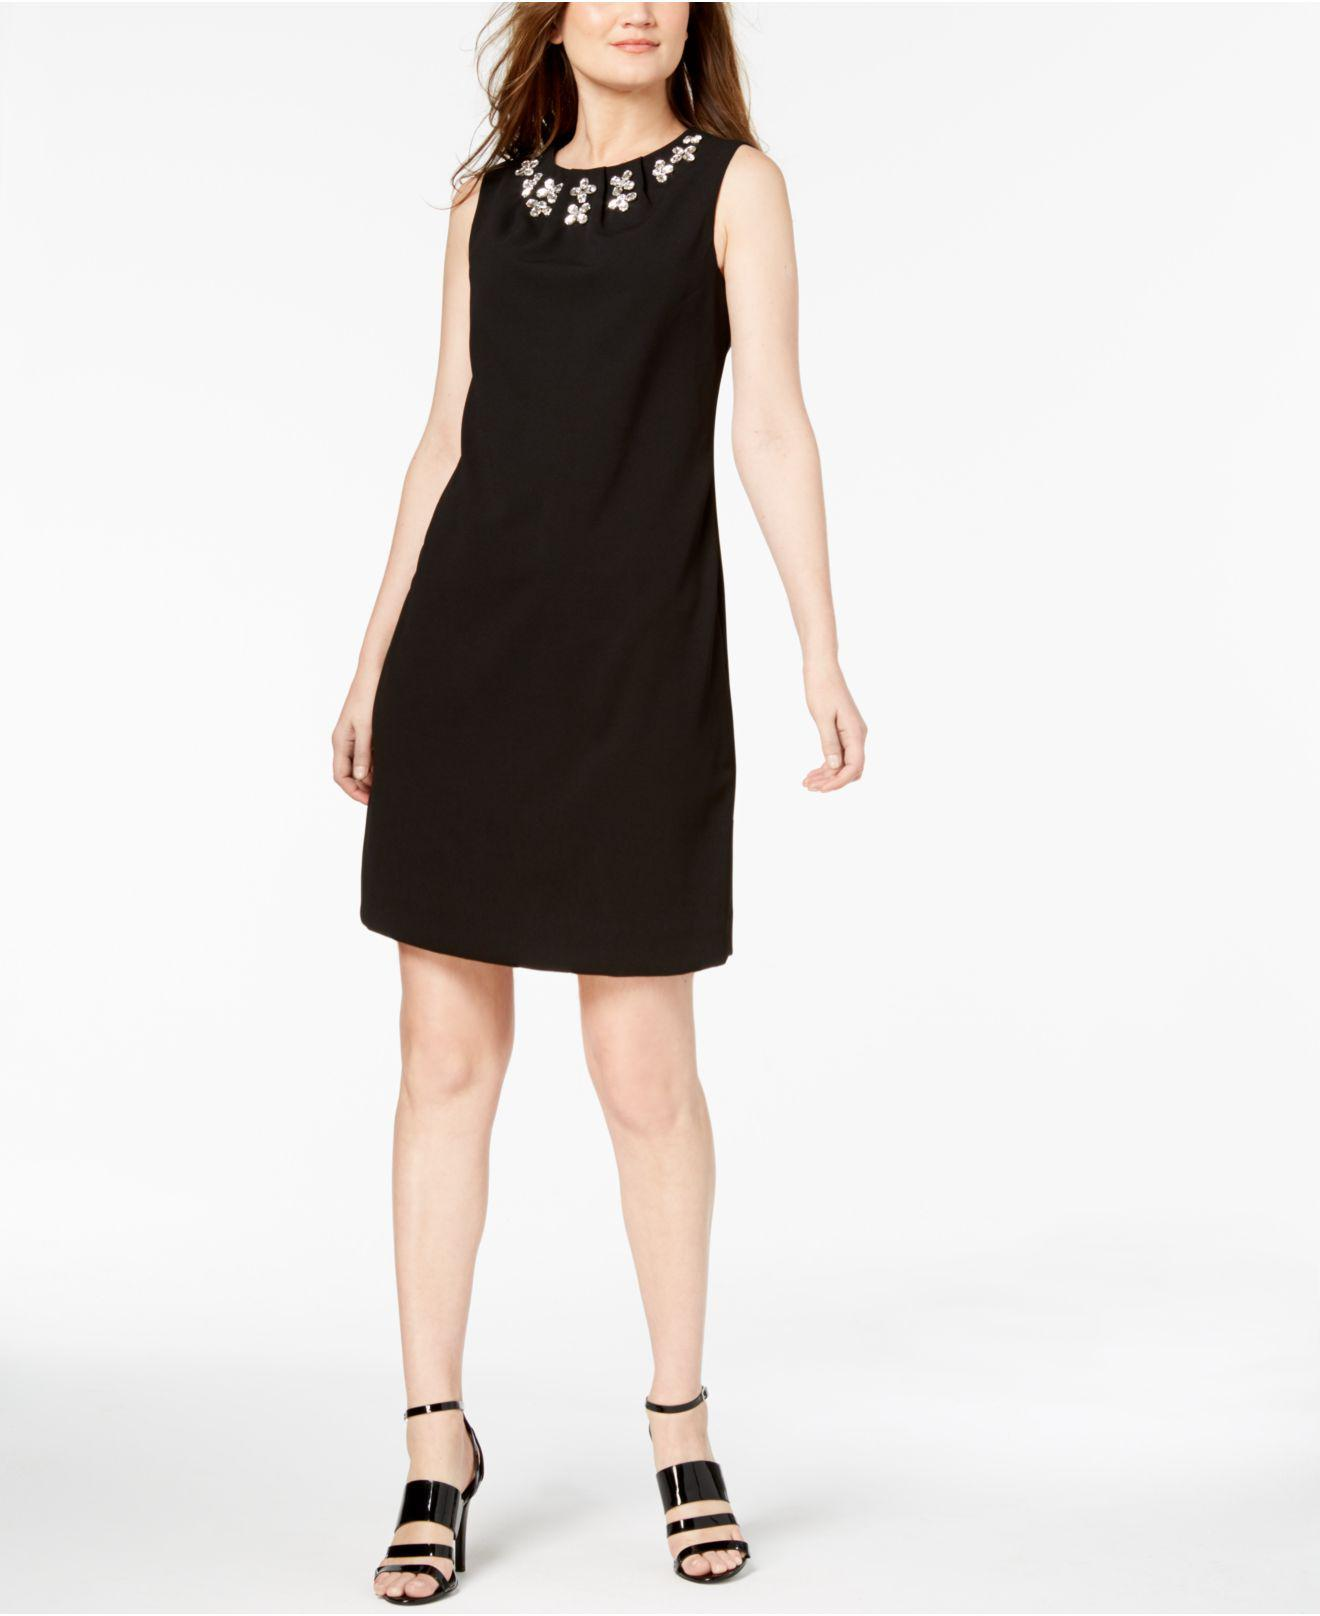 33c7ce16 Lyst - Calvin Klein Jewel-neck Sleeveless Sheath Dress in Black